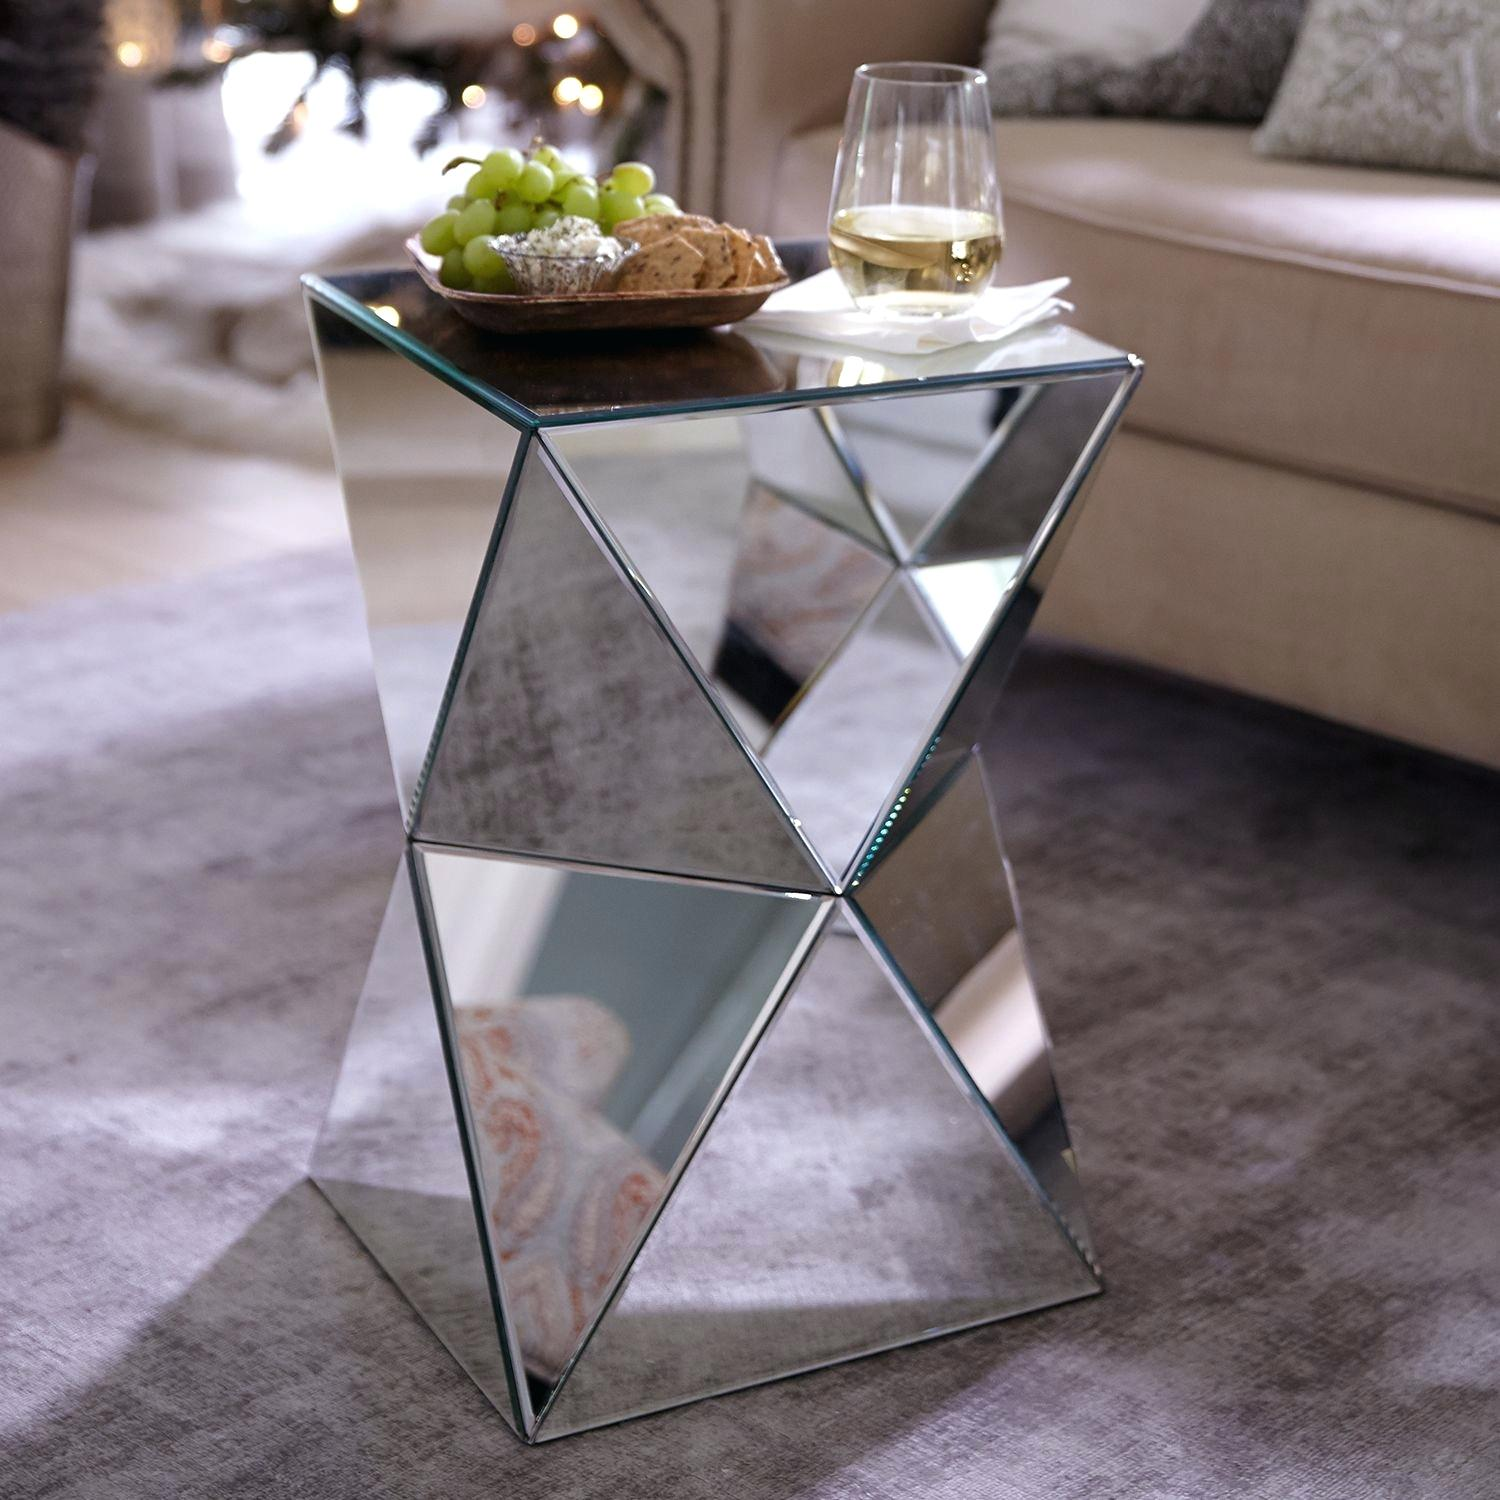 glass mirrored accent table finished transparent small deremer save this item open gallery diamond southern enterprises mirage monarch astoria patio accents bourse michelin real